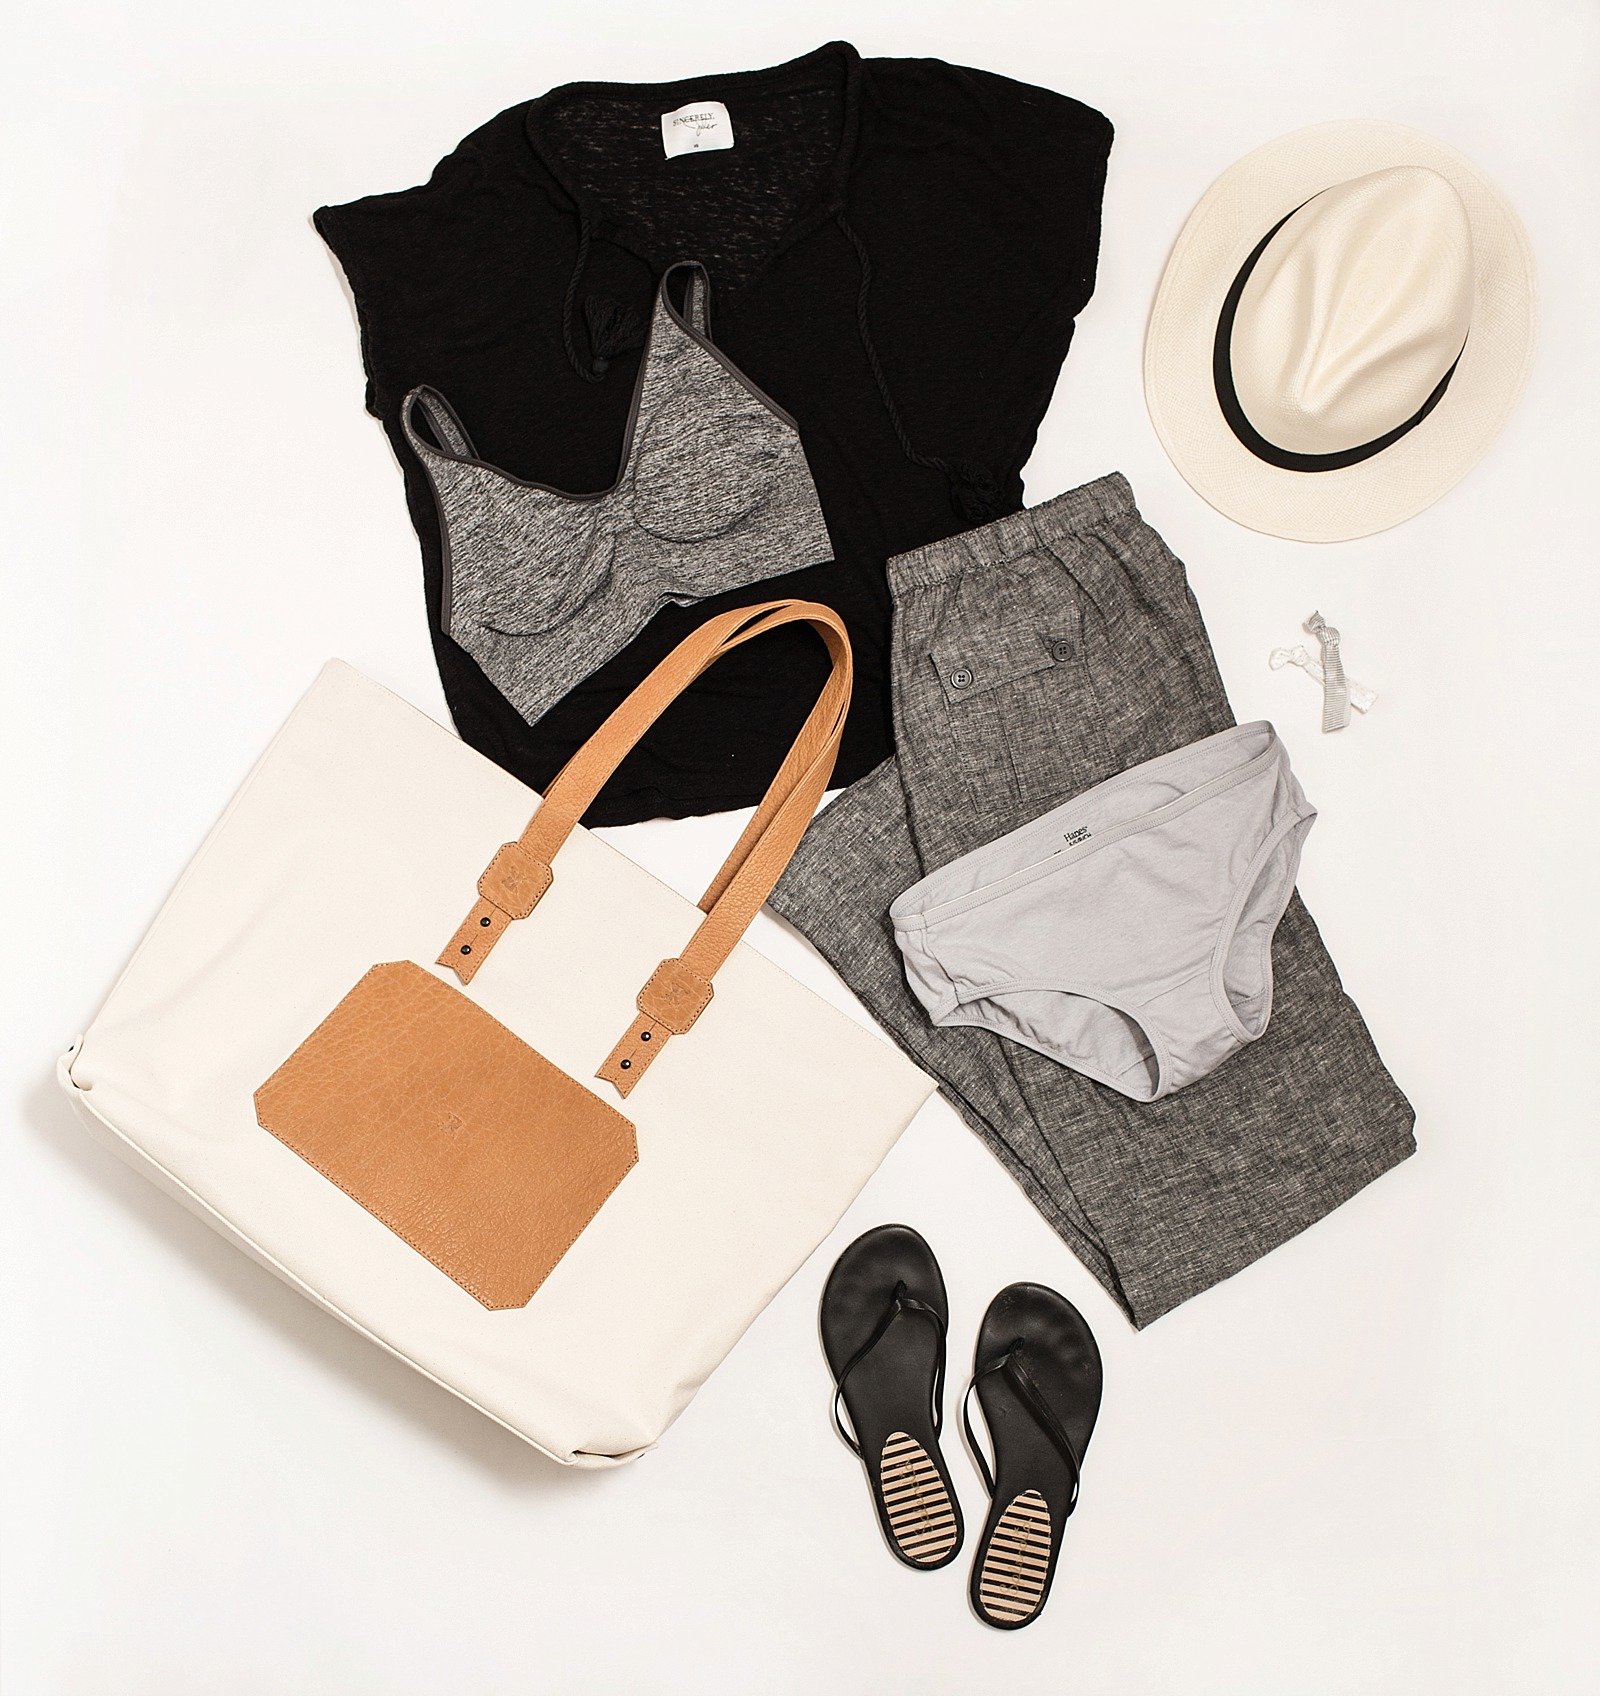 diana-elizabeth-blog-fashion-blogger_hanes-comfort-airplane-travel-flat-lay-0113